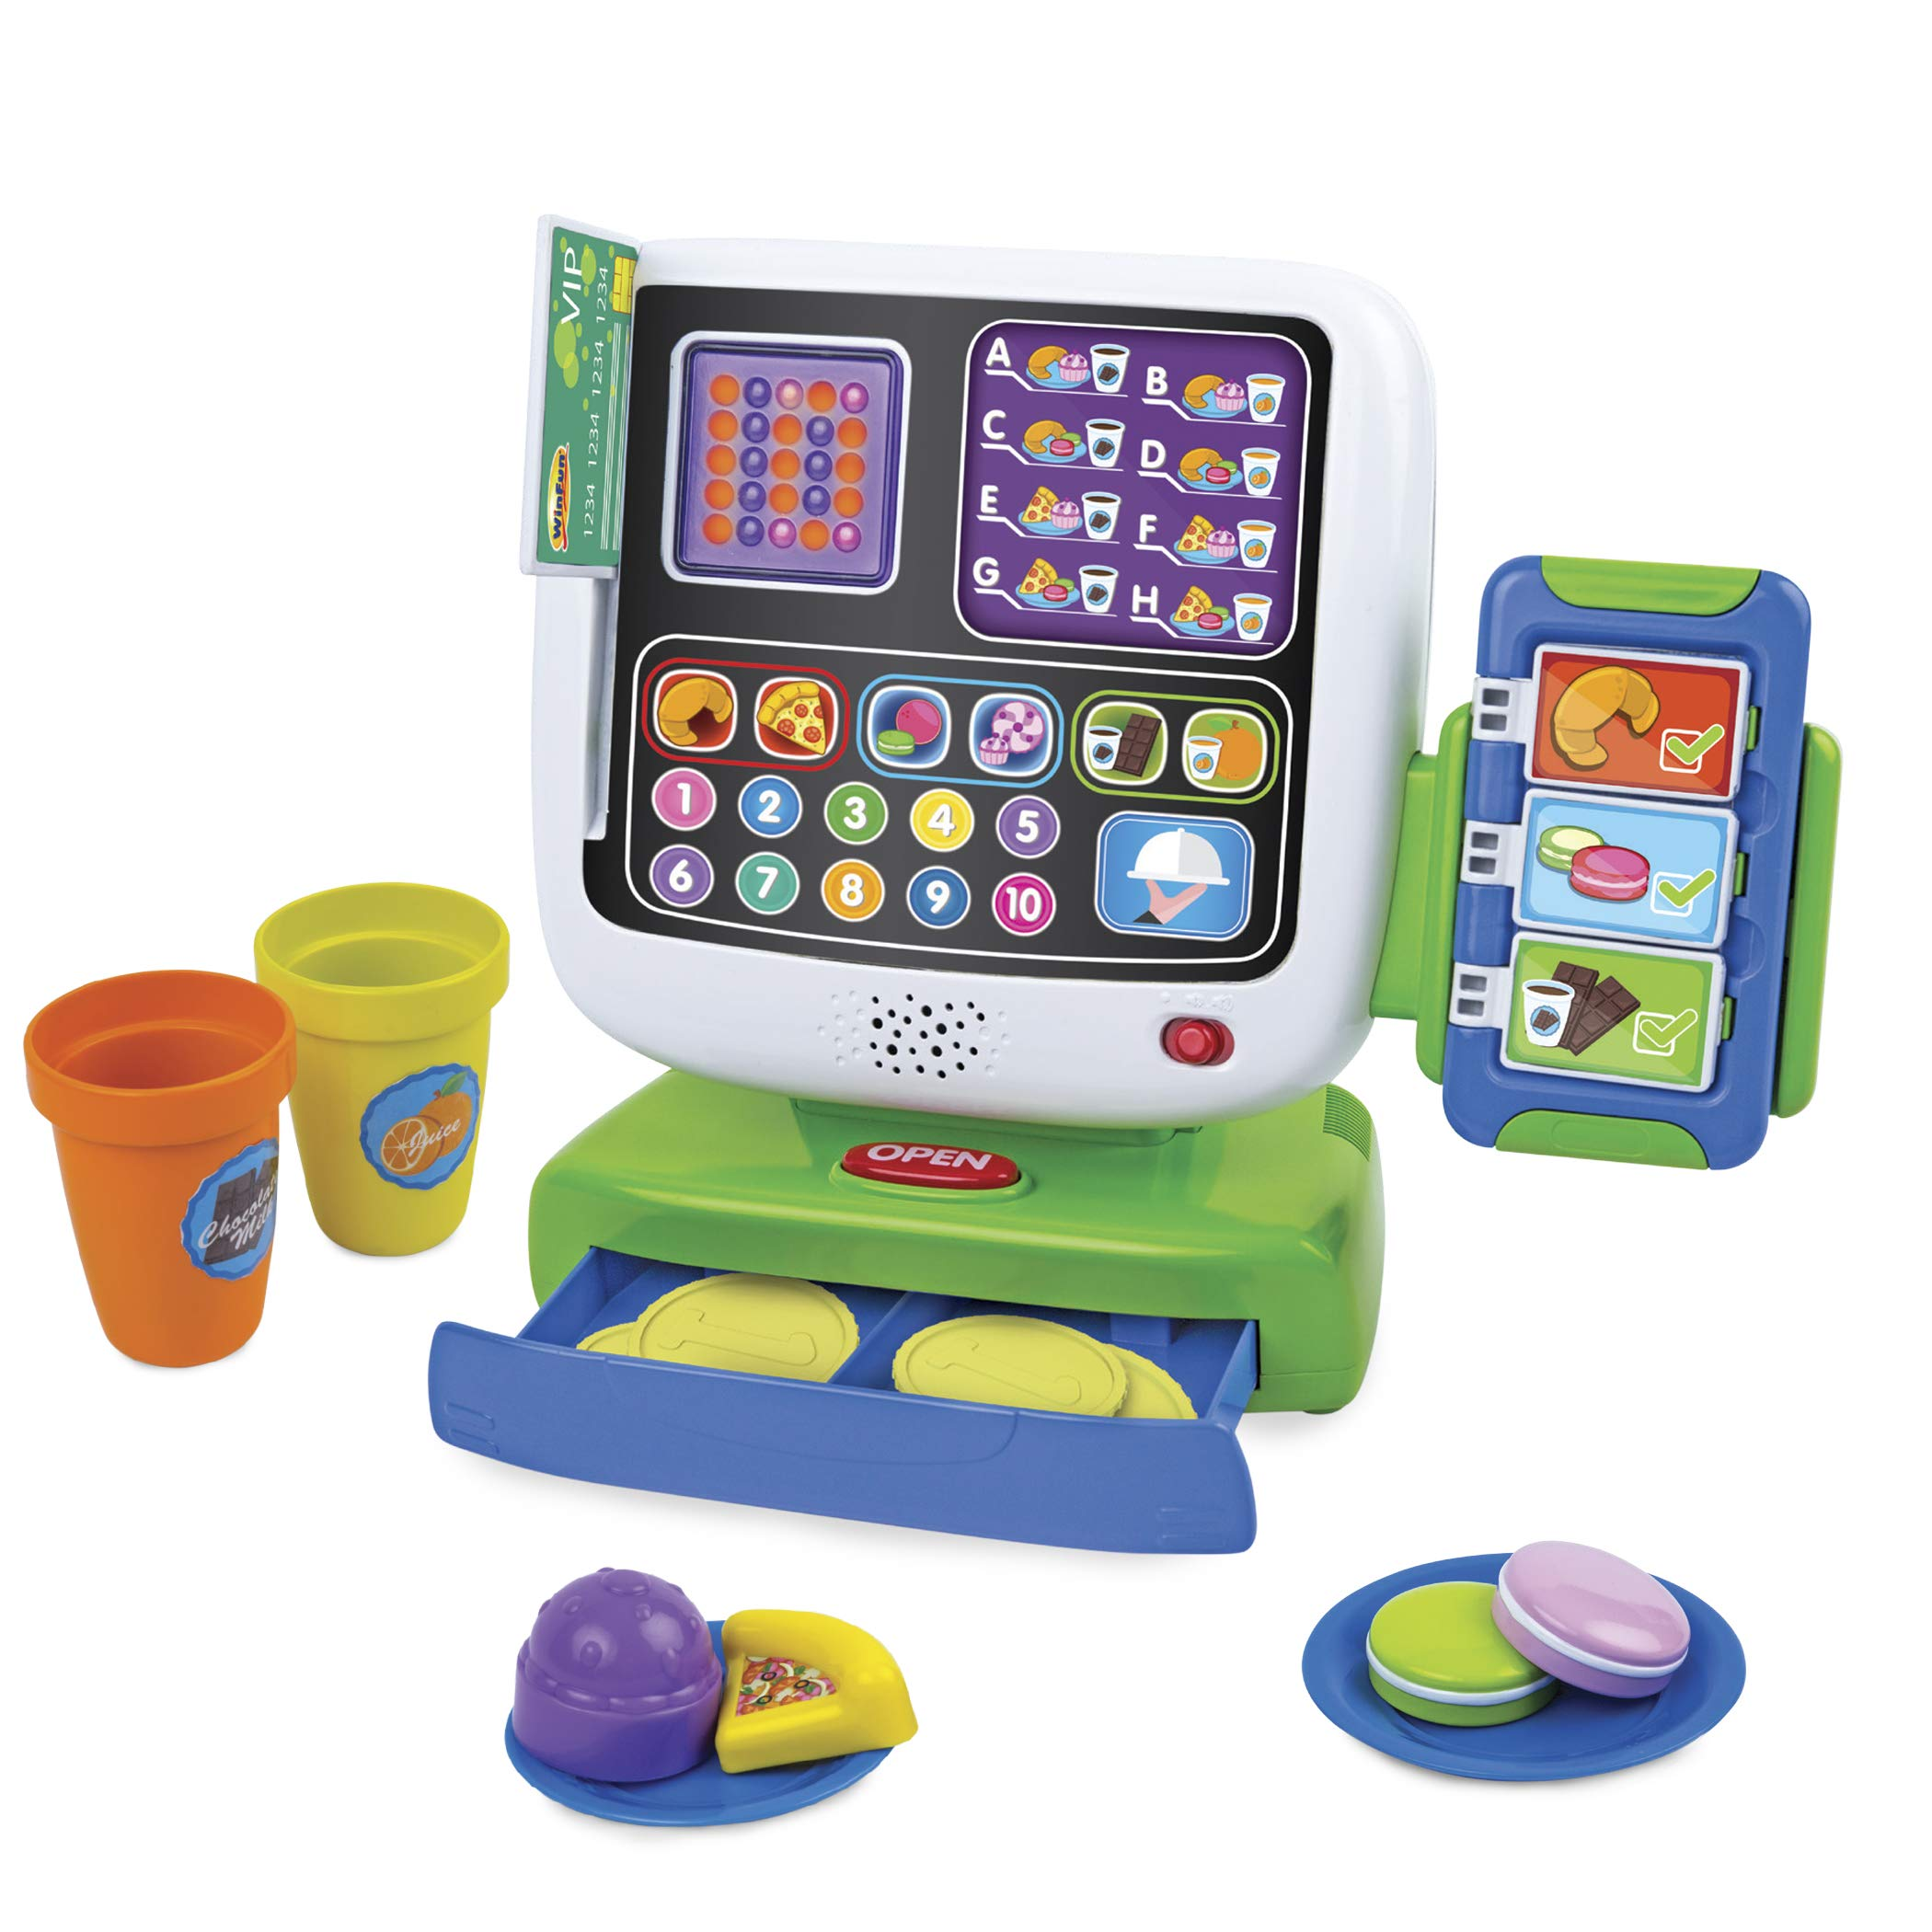 Winfun Icafe Cash Register, Multi by WinFun (Image #1)